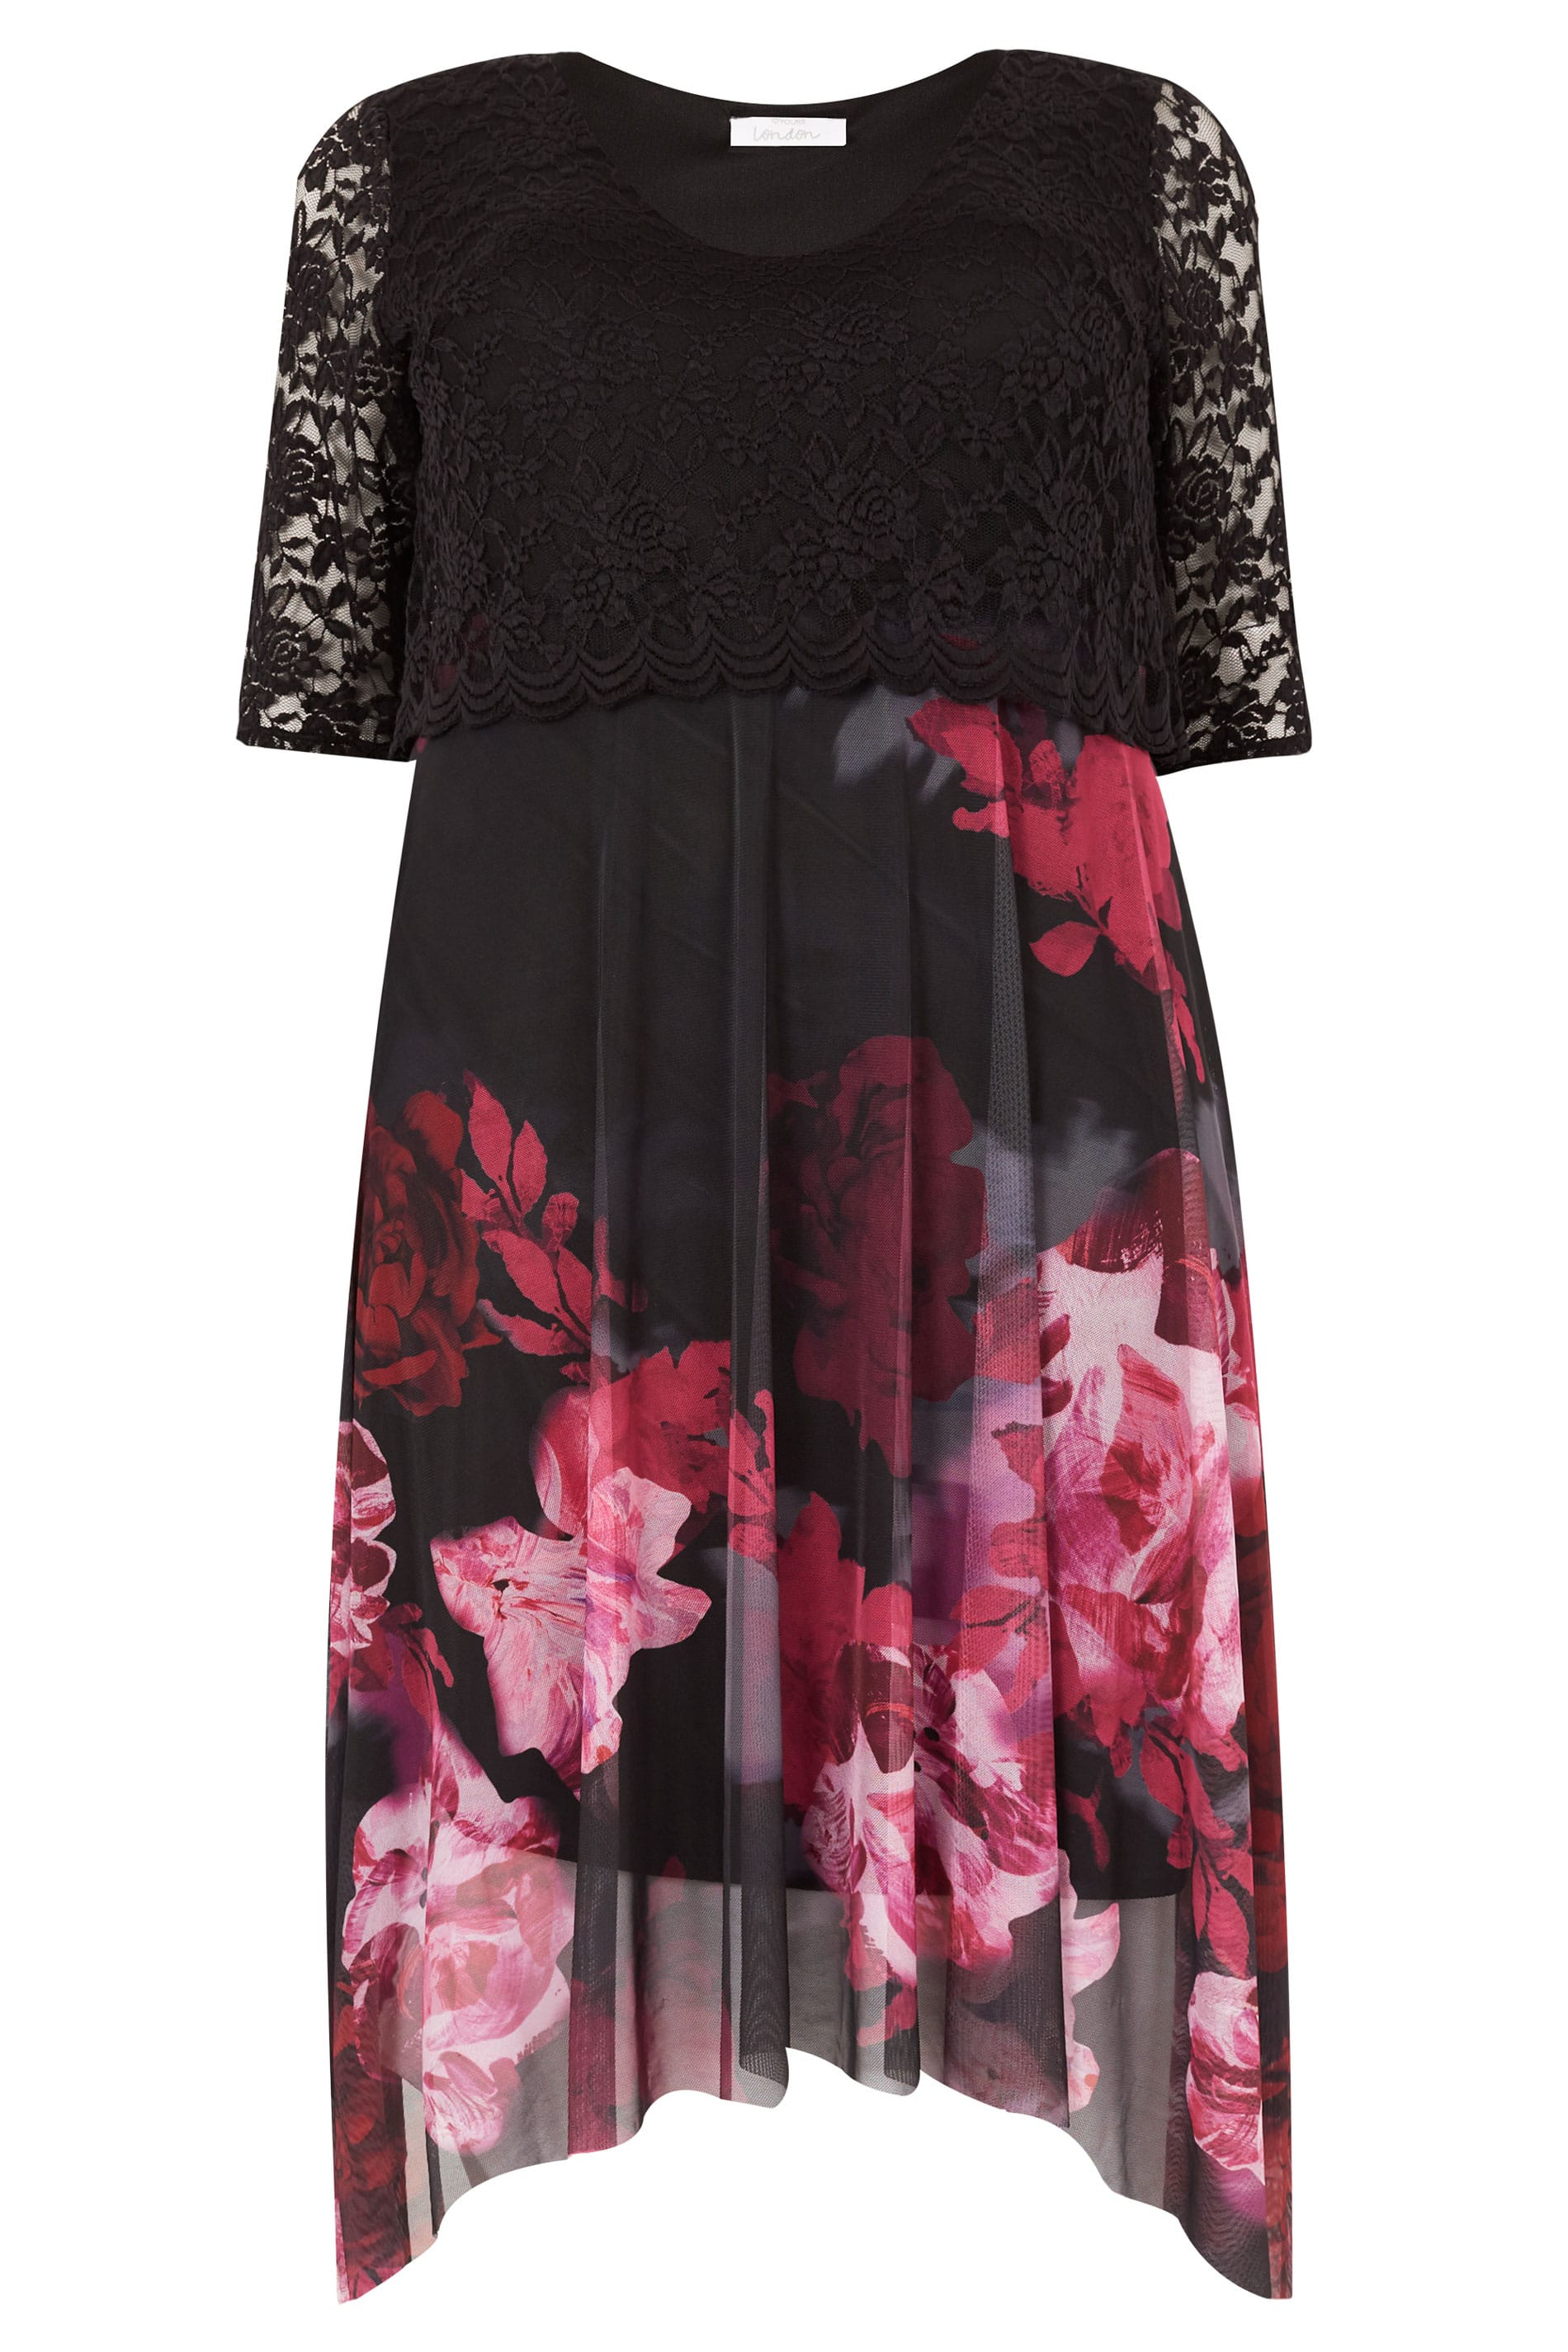 Yours London Black Berry Floral Dress With Lace Overlay